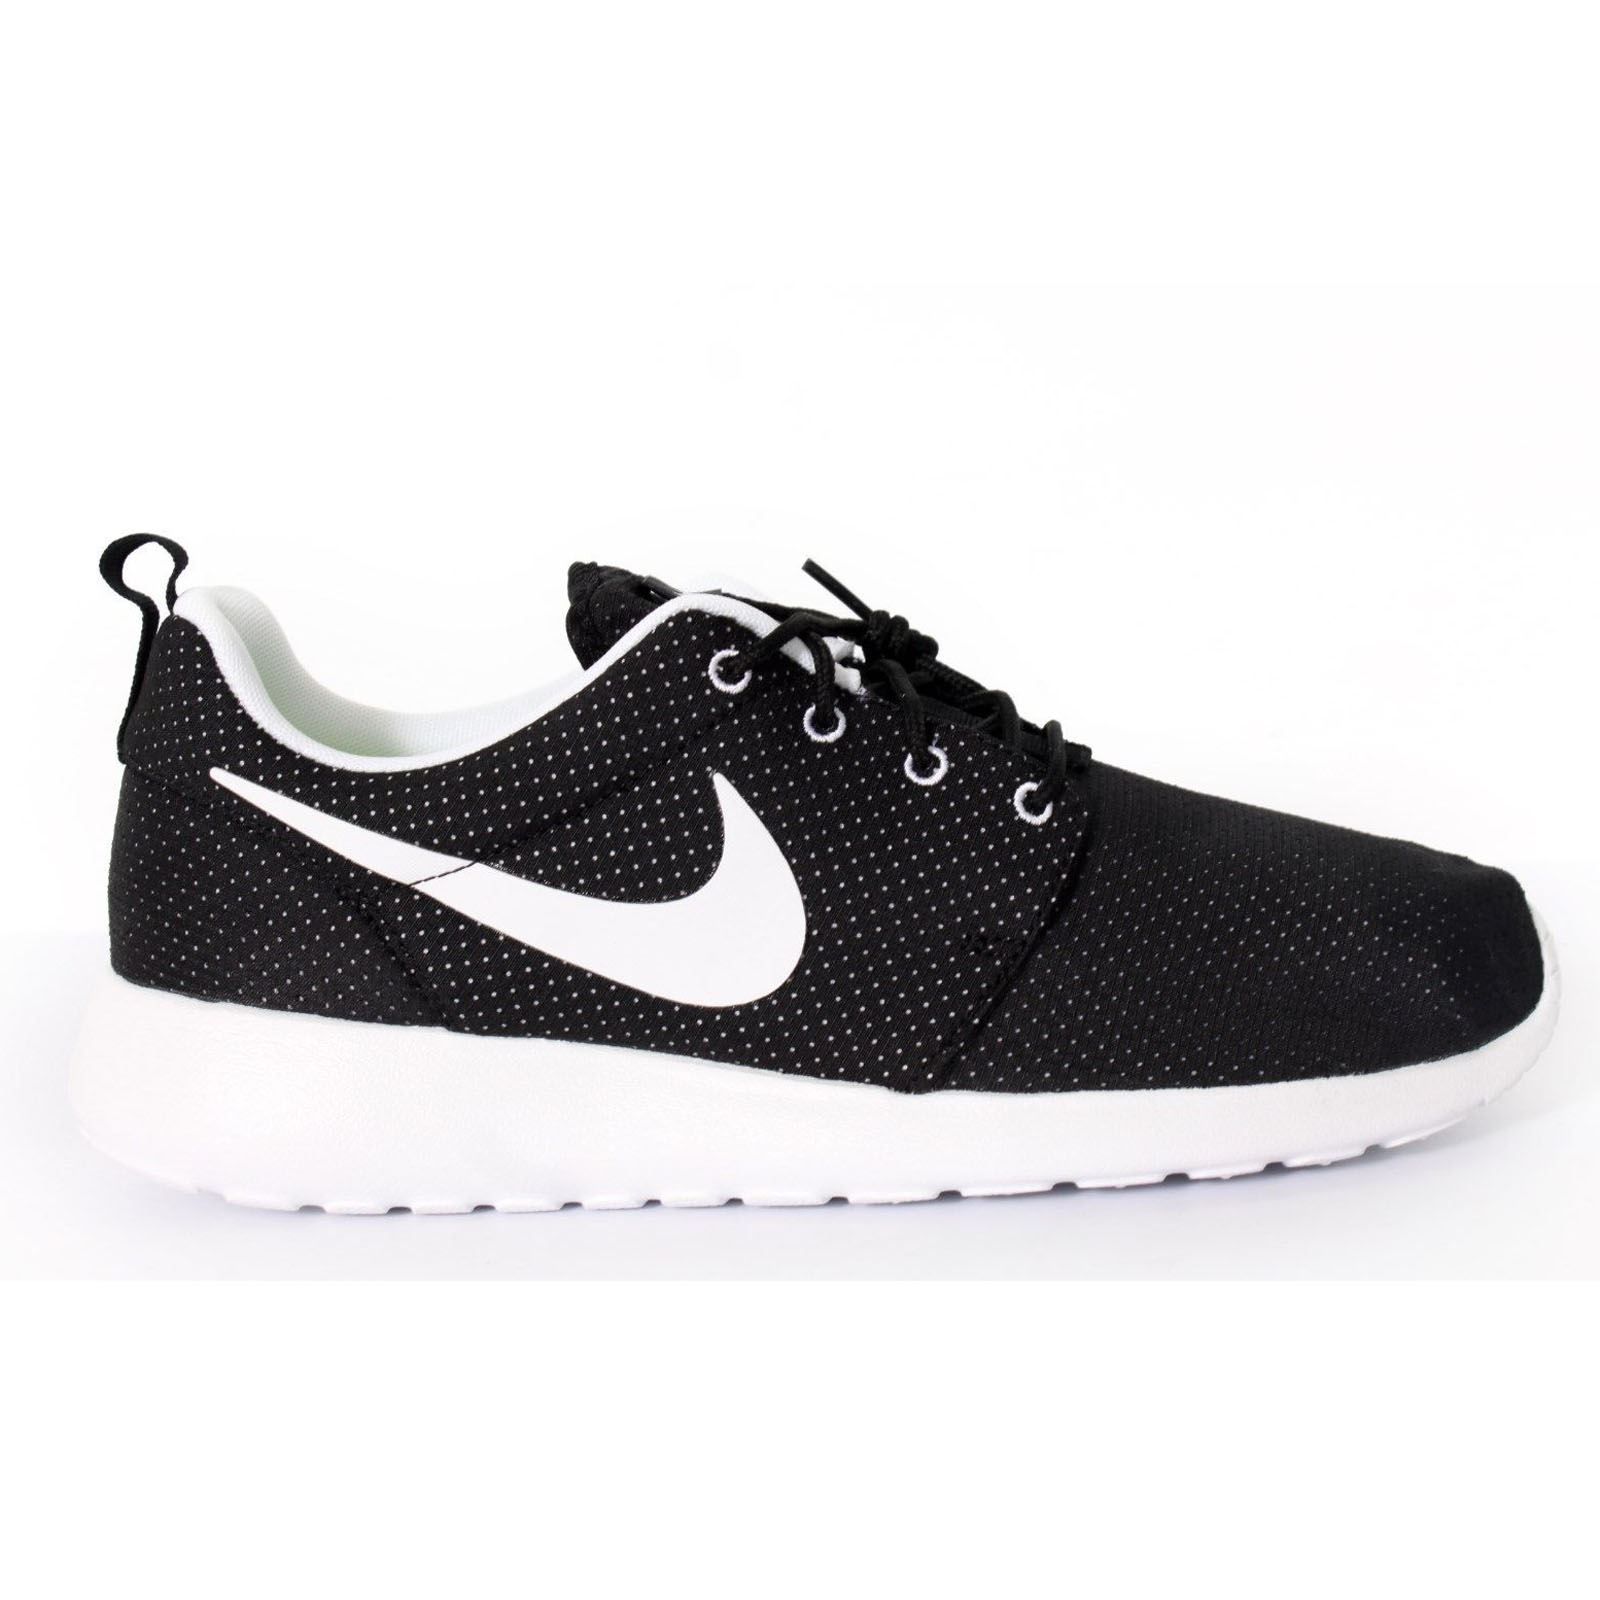 nike roshe run online shop singapore